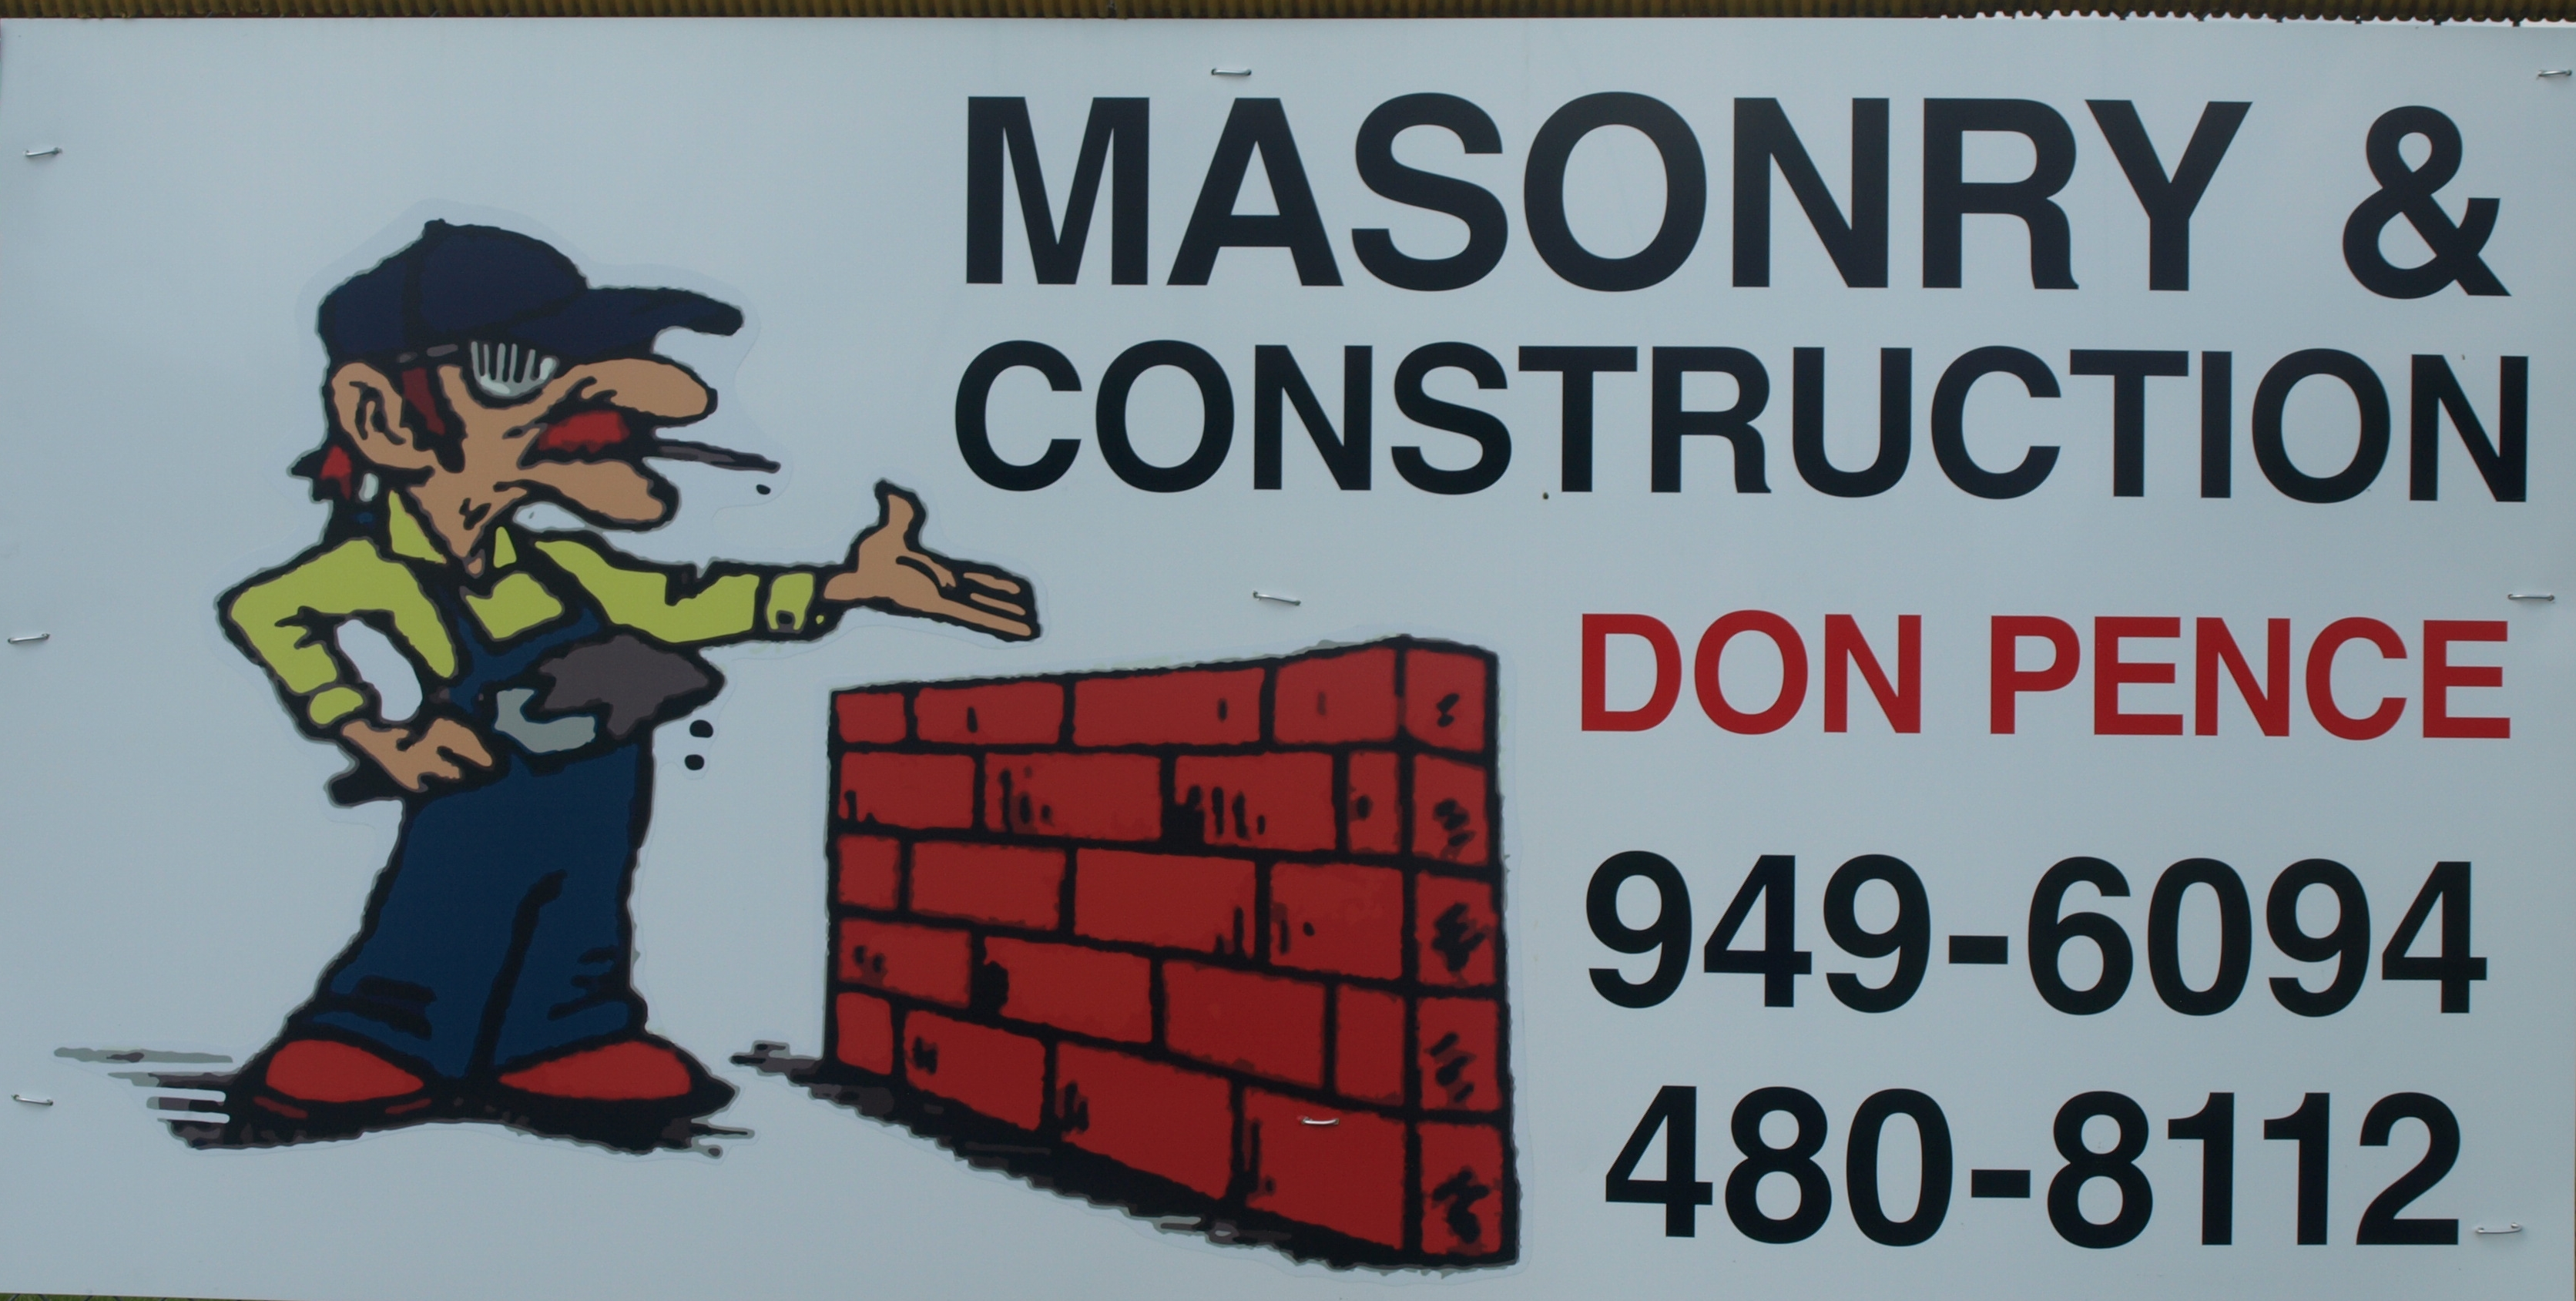 Don Pence, Masonry Contractor